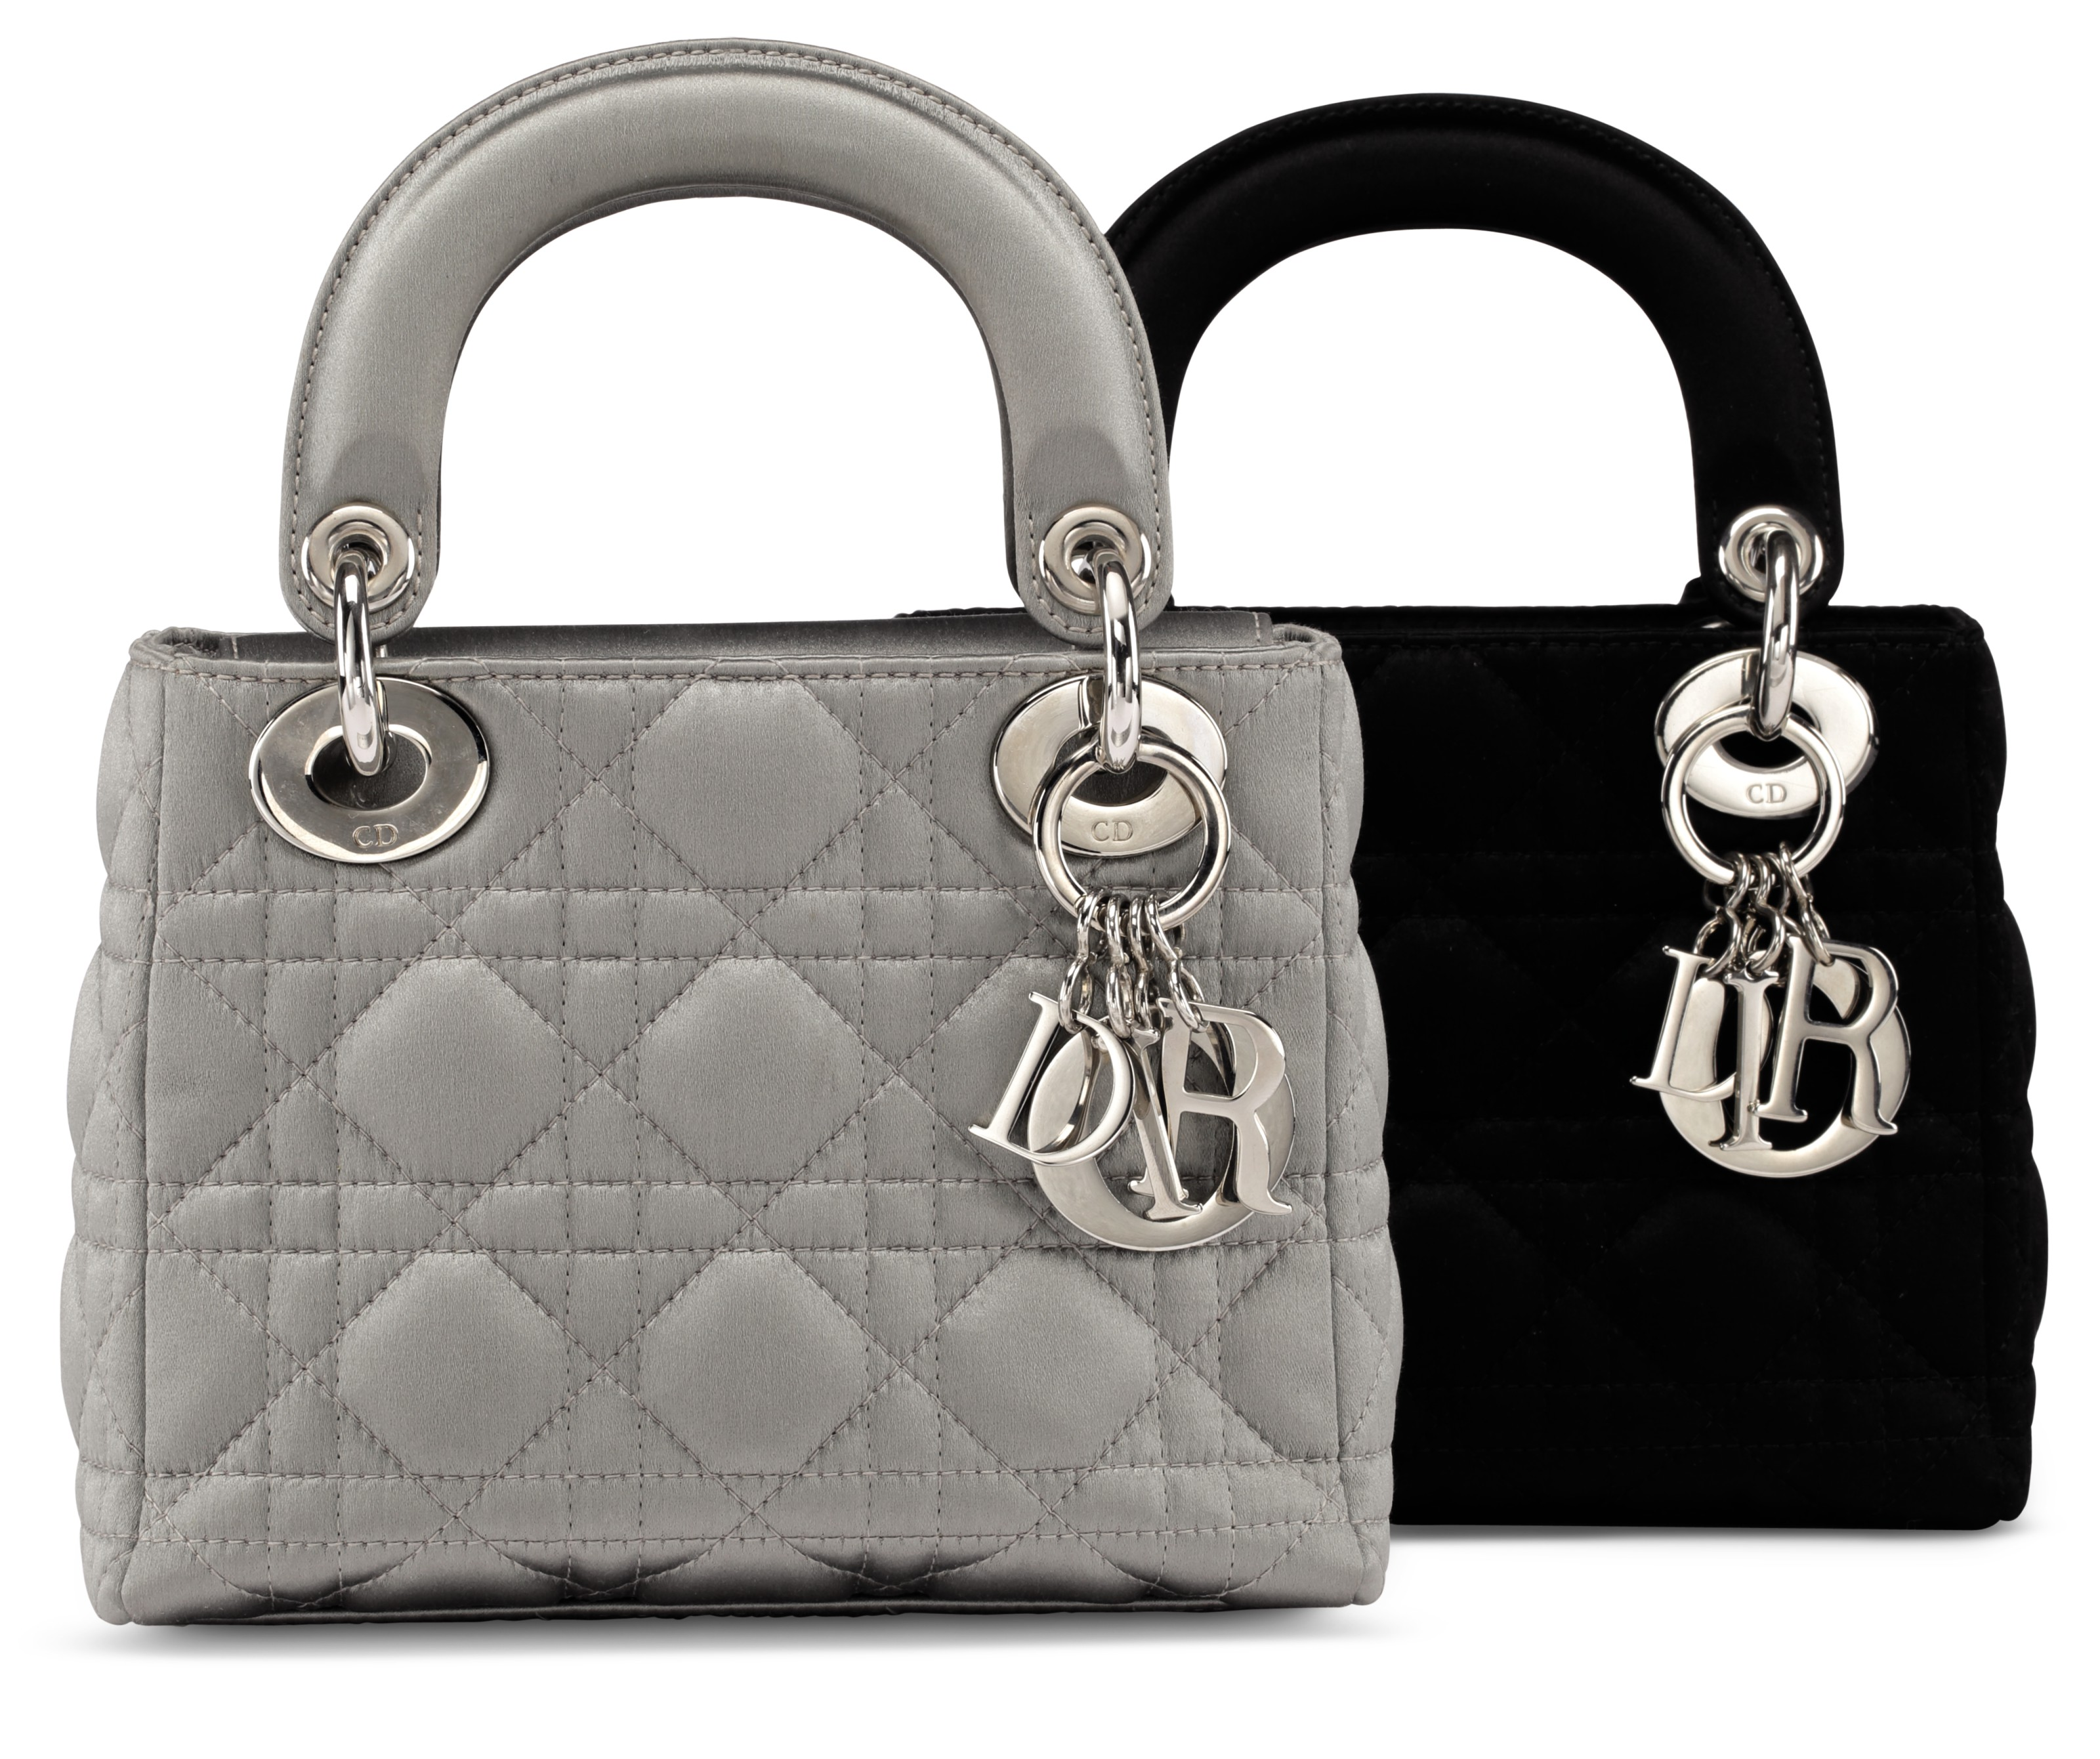 c53d2912691b A SET OF TWO A BLACK SATIN CANNAGE MINI LADY DIOR BAG WITH SILVER HARDWAREA  SILVER SATIN CANNAGE MINI LADY DIOR BAG WITH SILVER HARDWARE